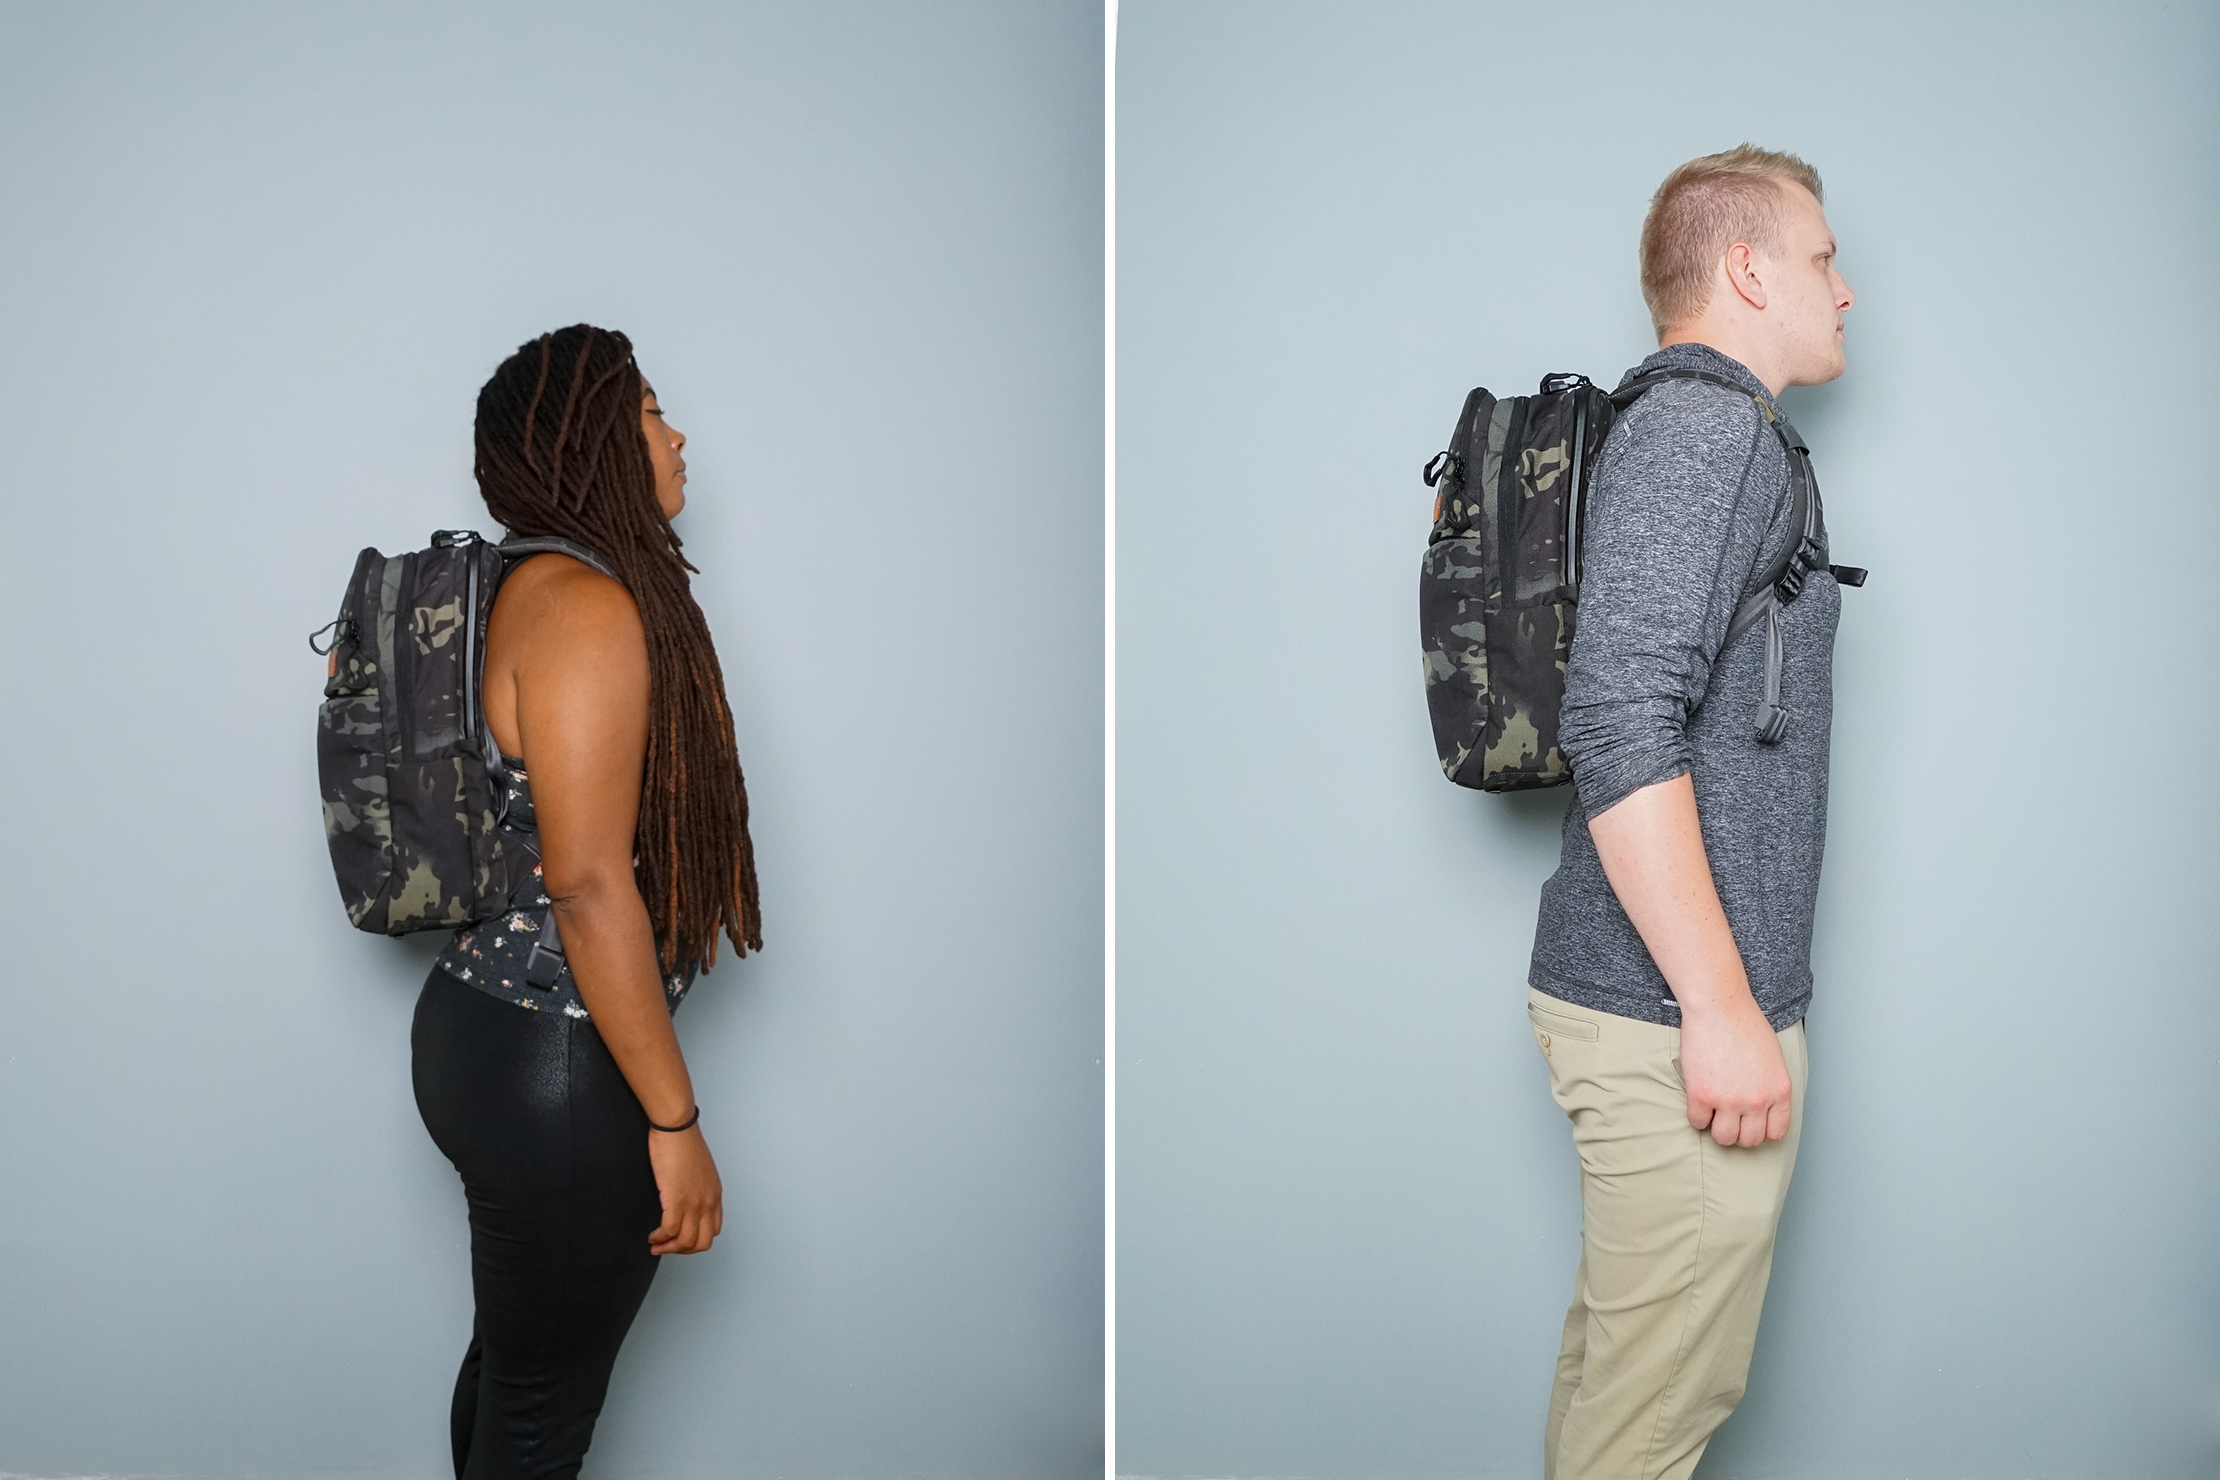 Vanquest ADDAX-18 Backpack male/female fit